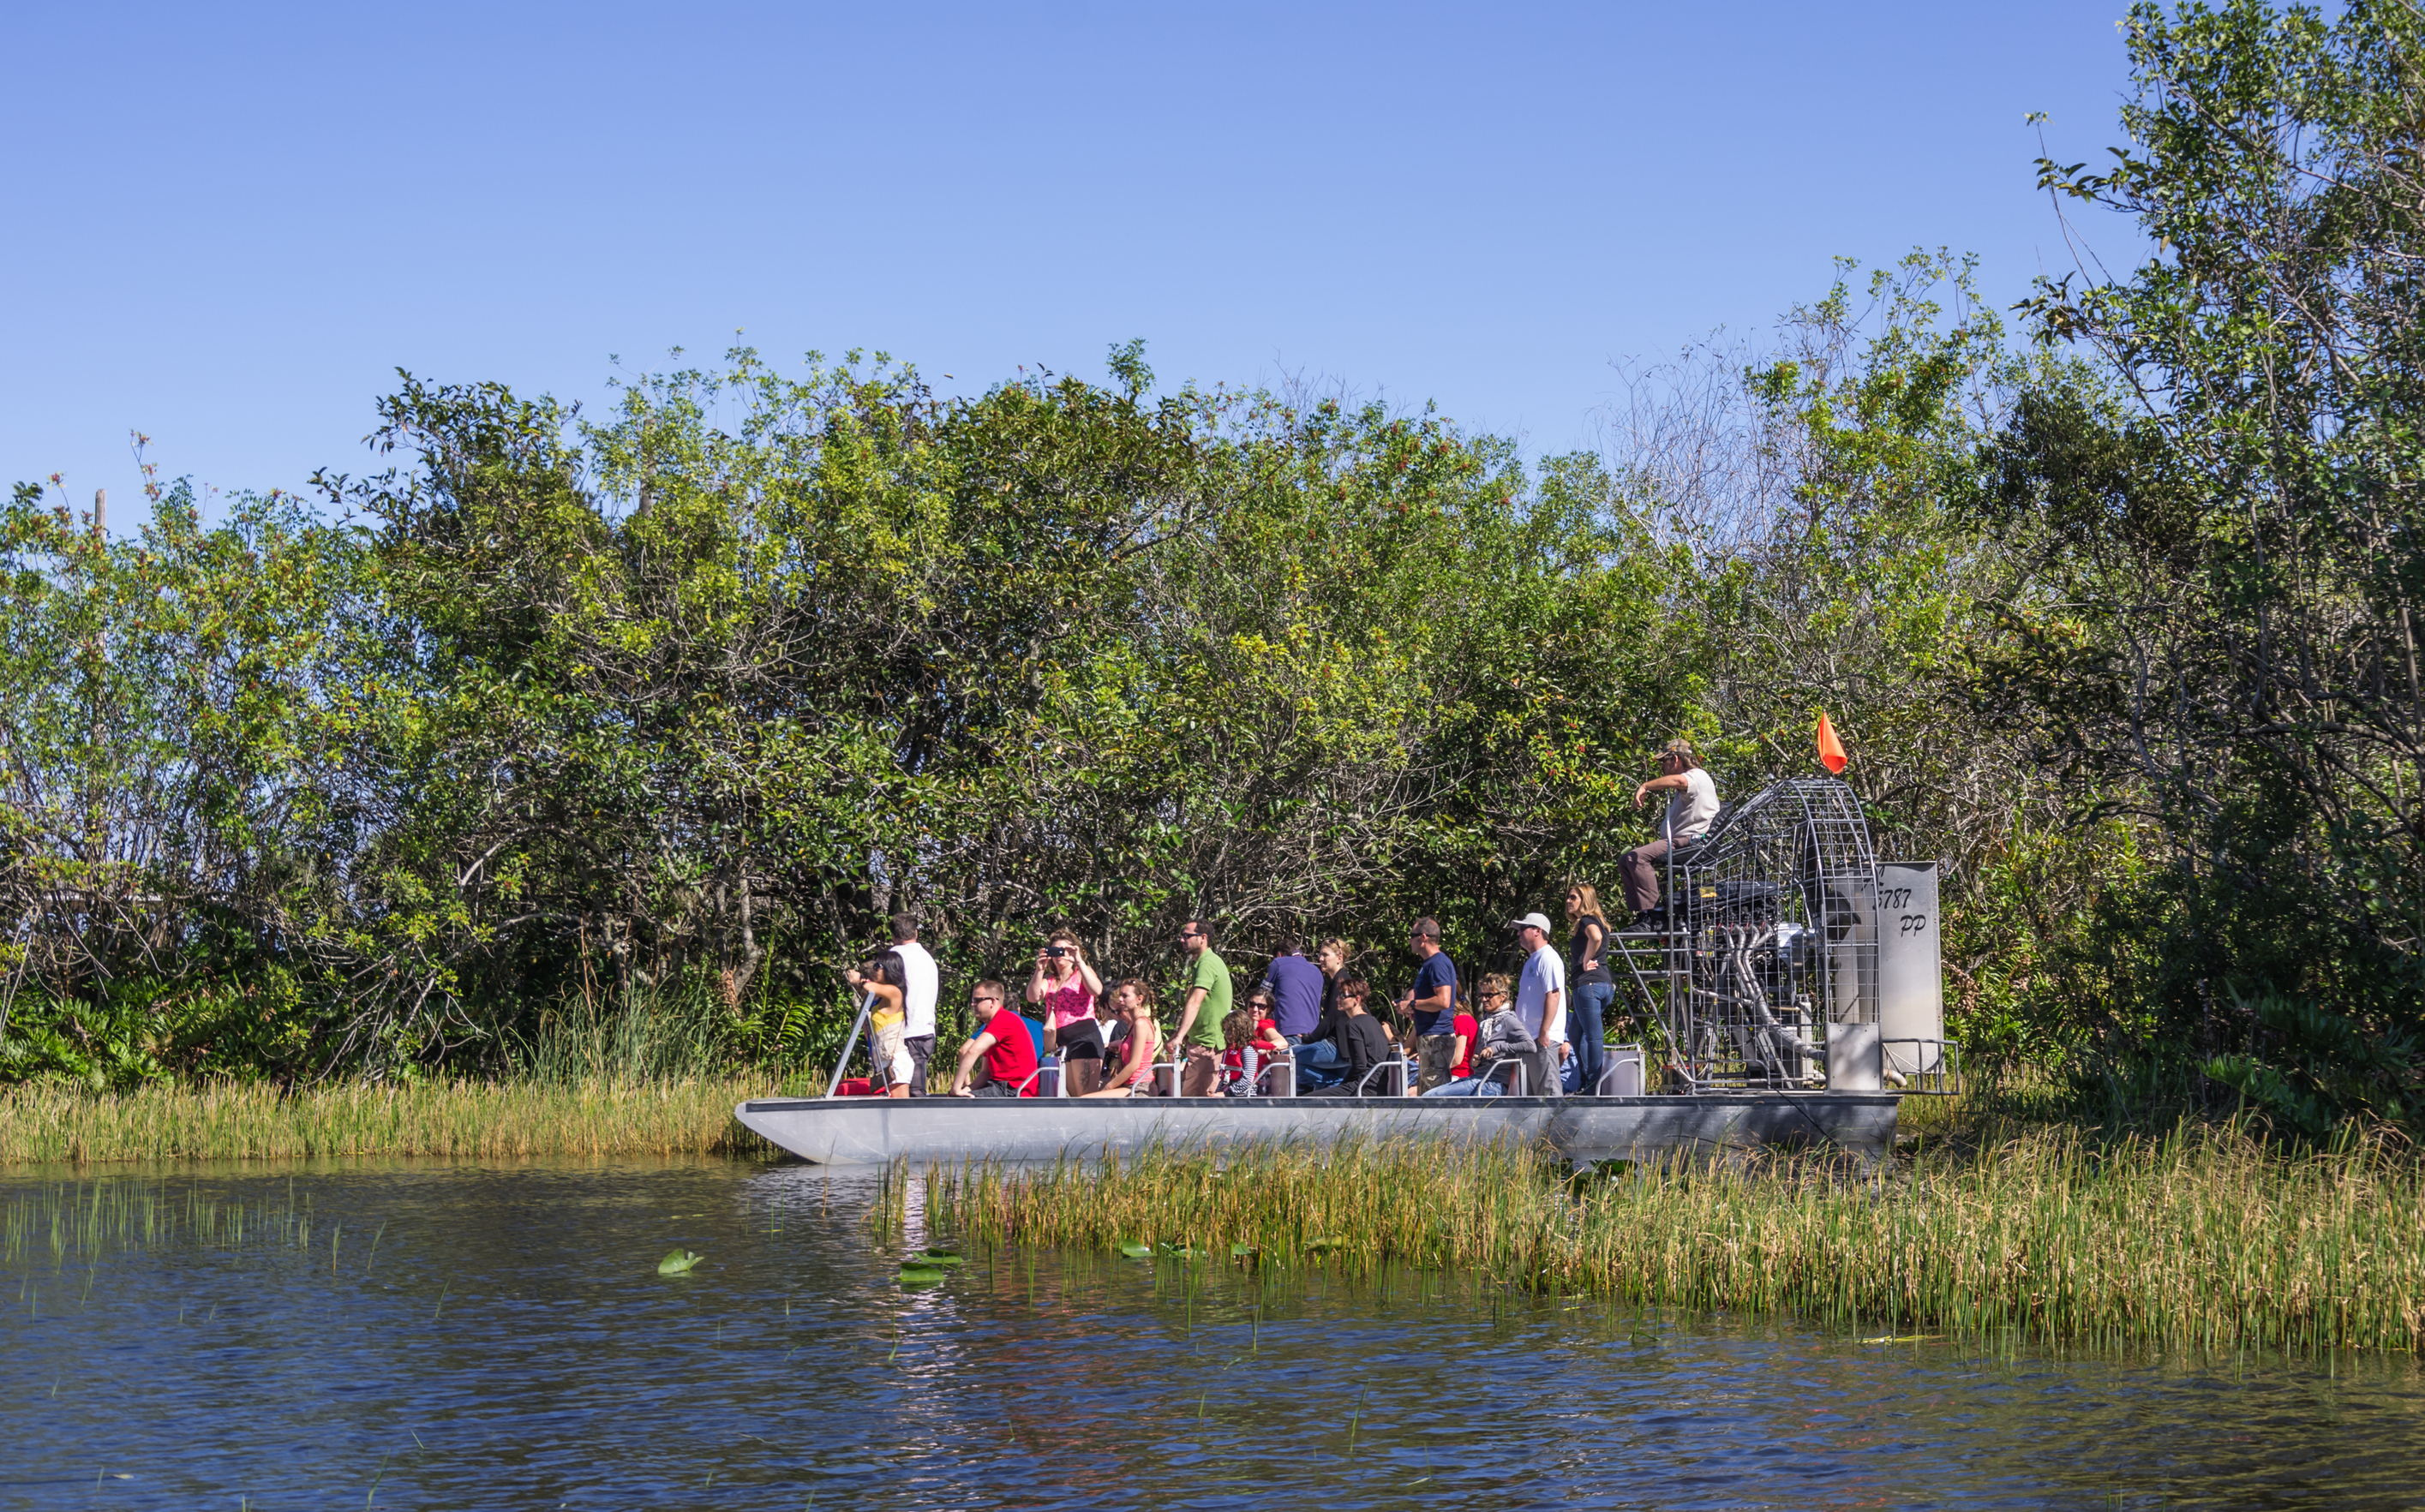 eople-on-airboat-in-the-evergladesflorida